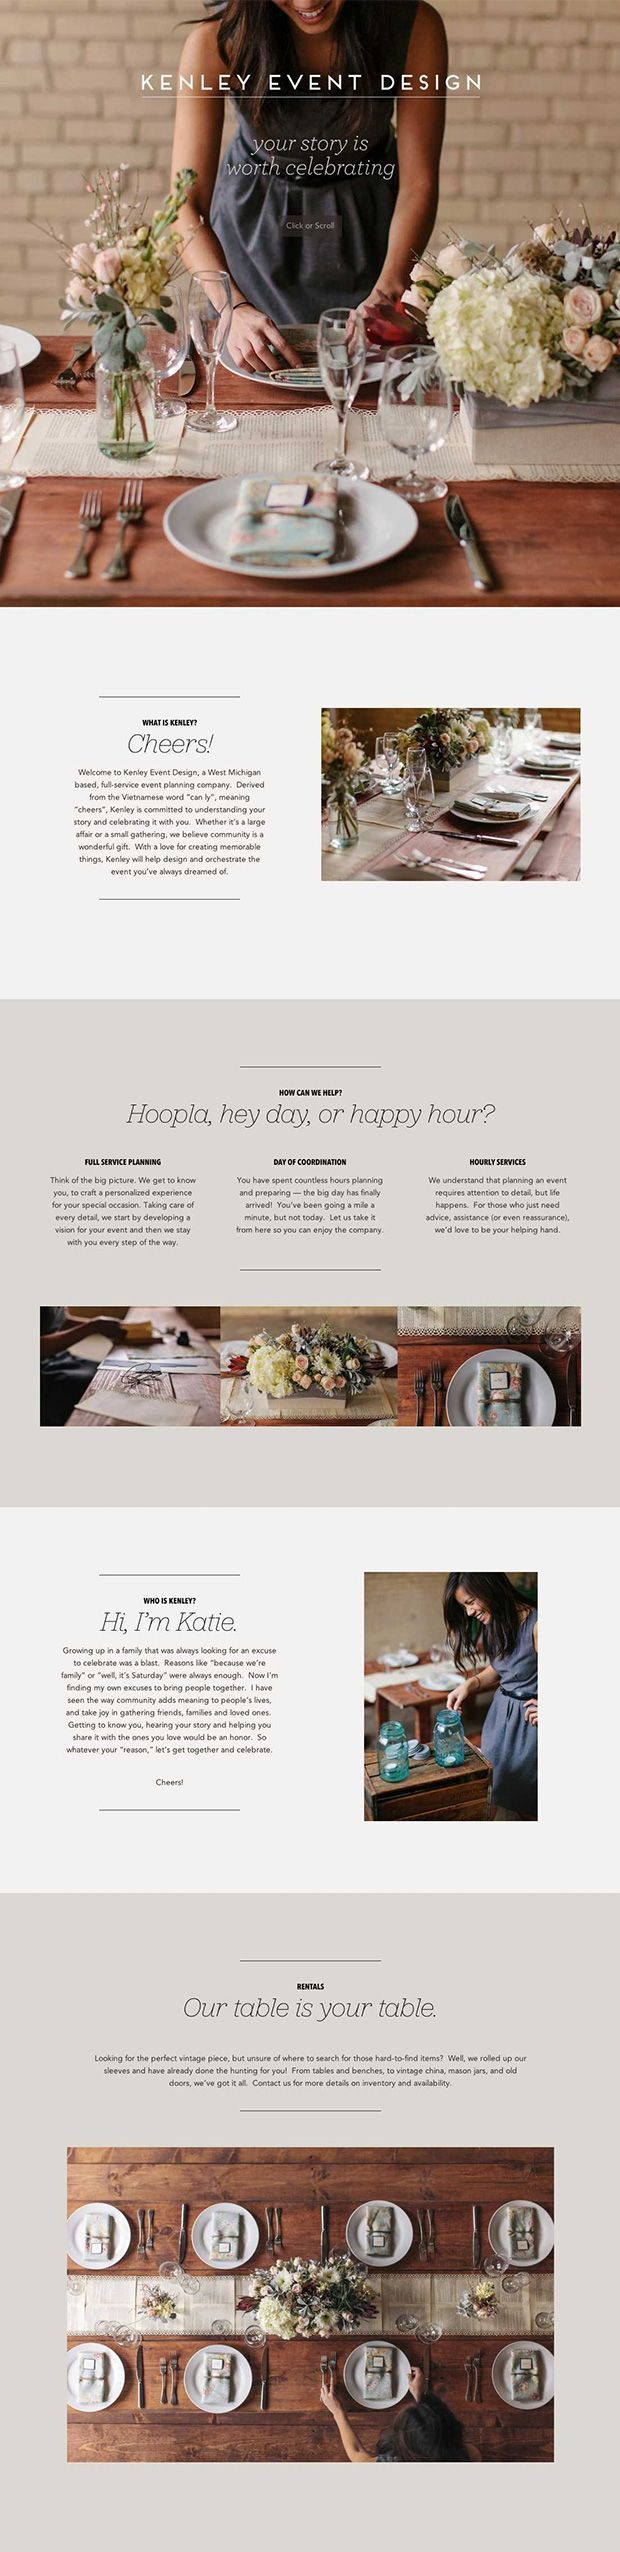 Great look for a business website or blog media kit